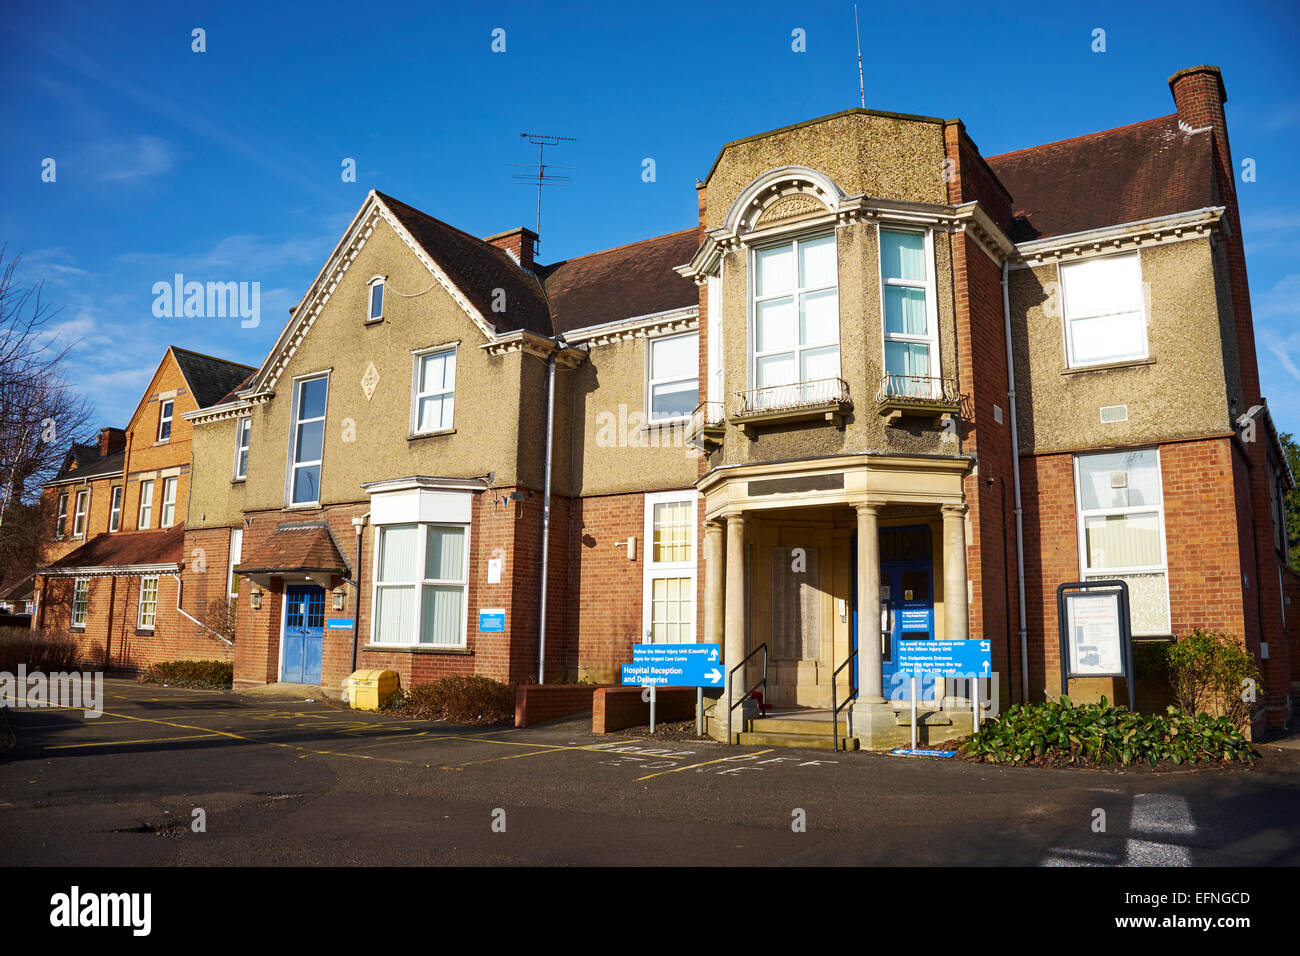 The District Hospital Market Harborough Leicestershire UK - Stock Image